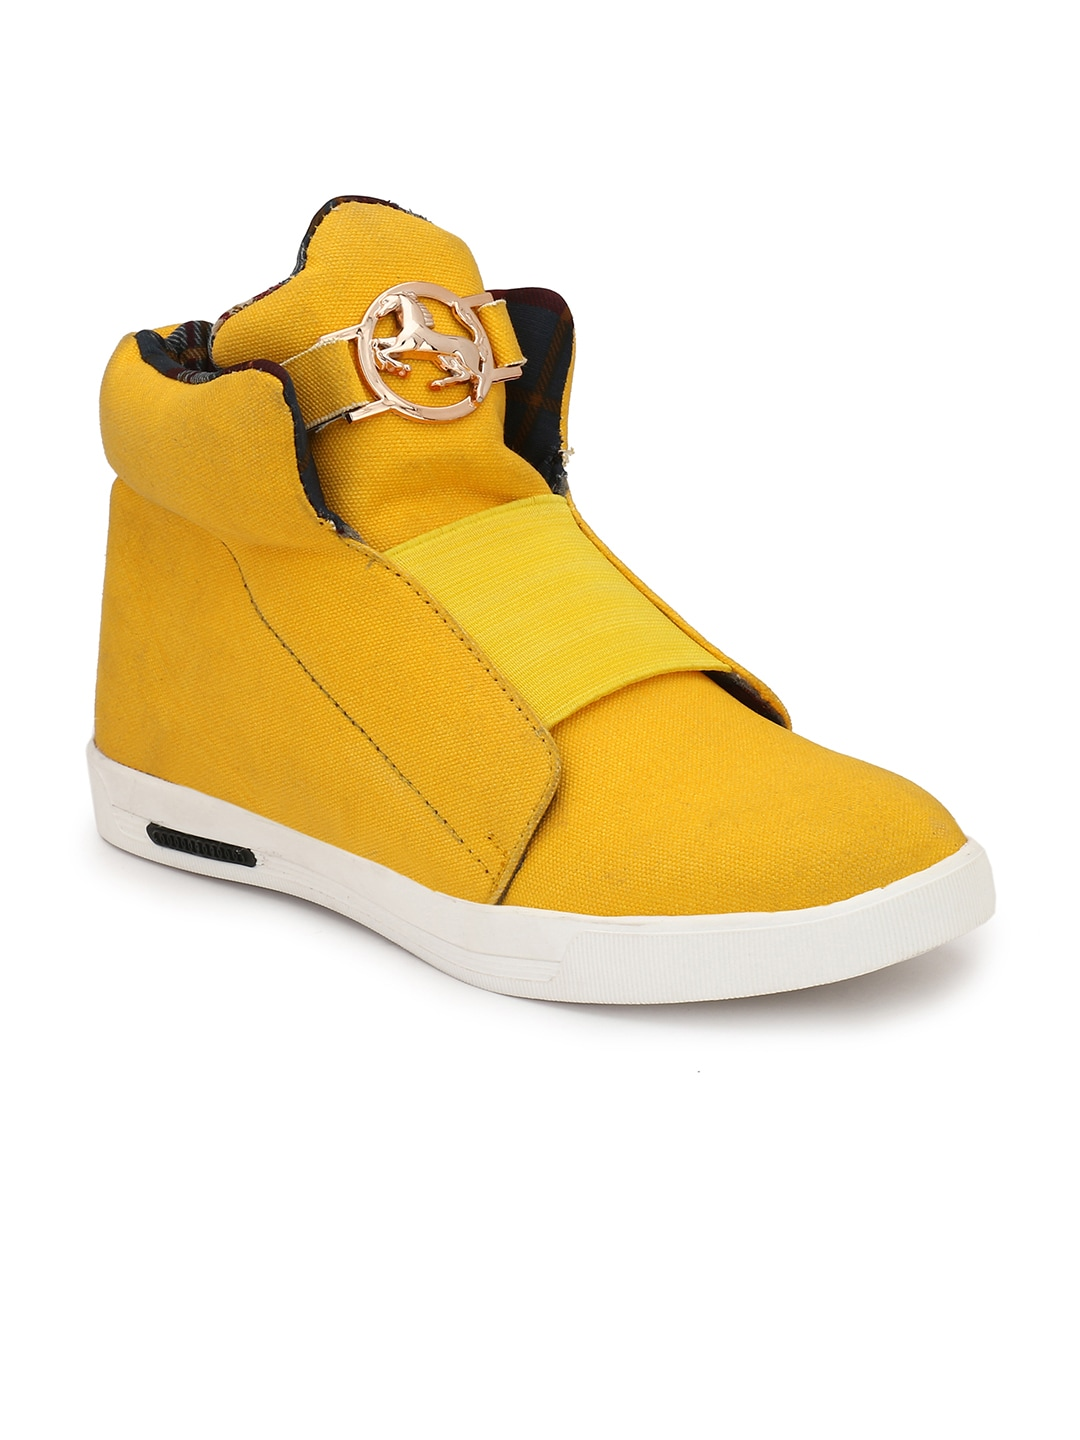 newest 2e5be 0f3a6 Yellow Shoes For Men - Buy Yellow Shoes For Men online in India